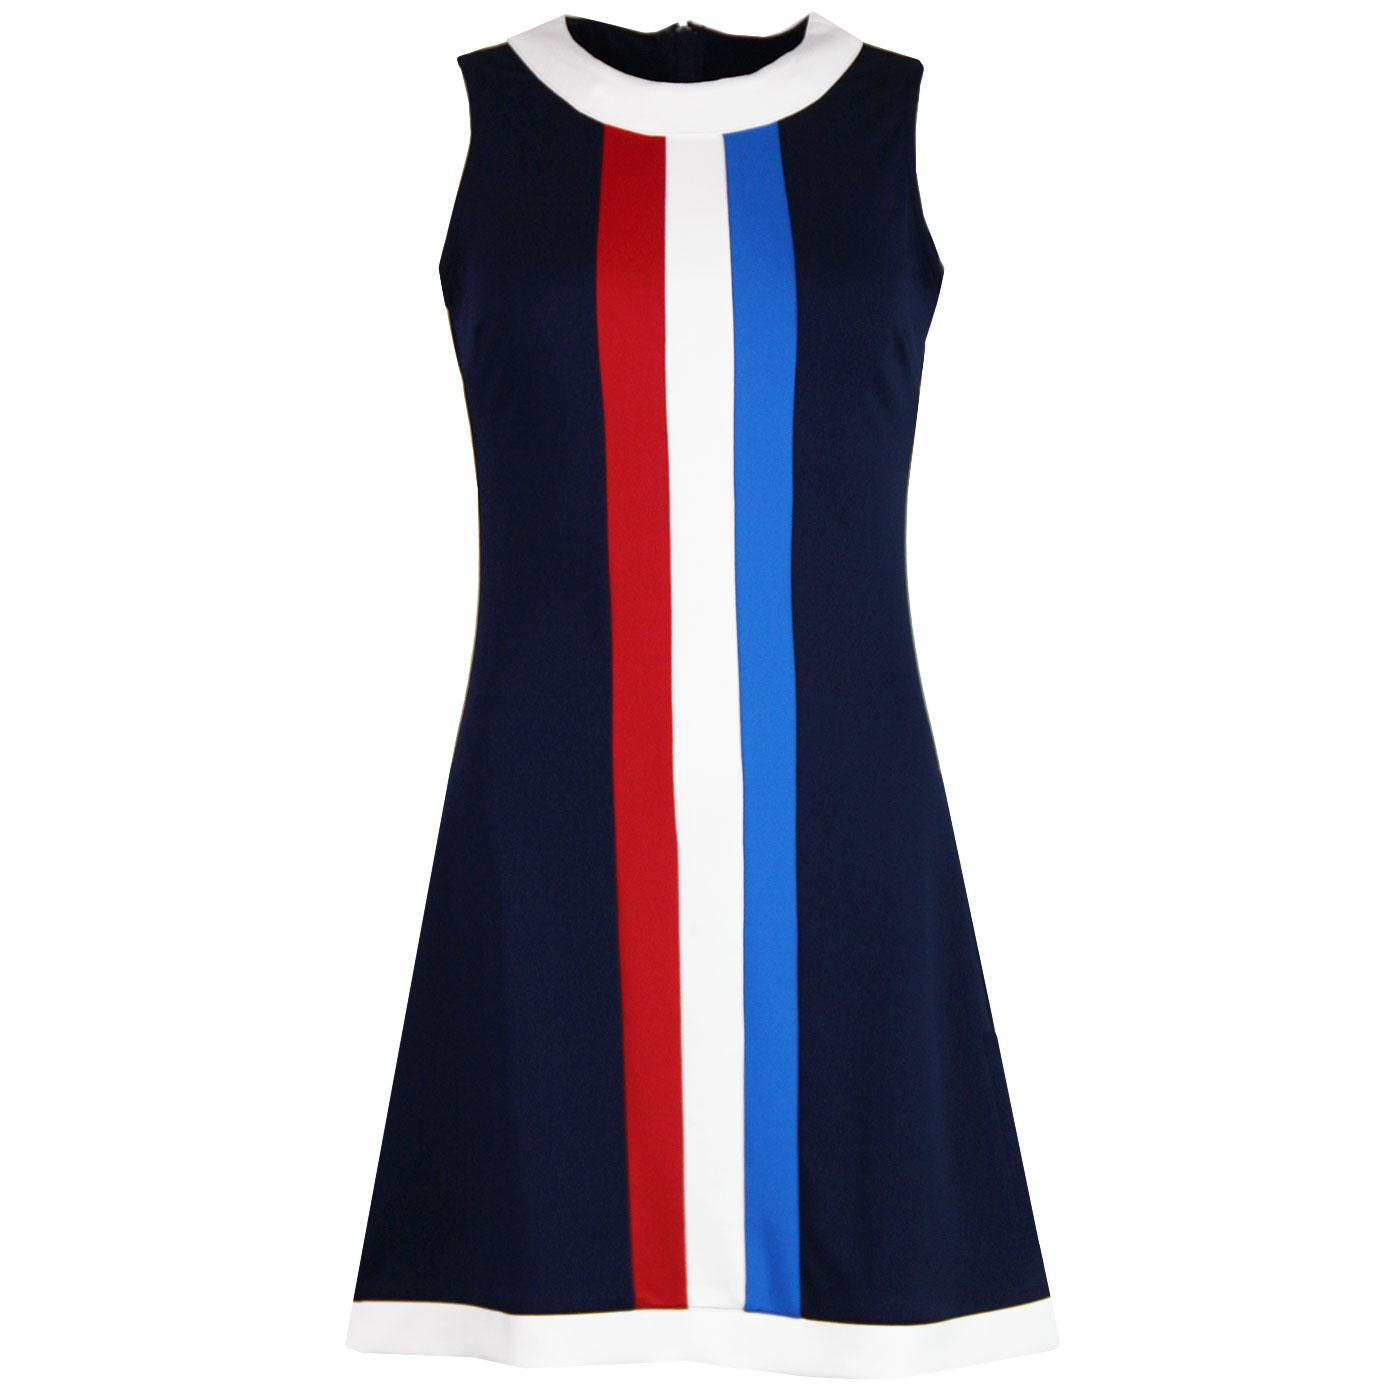 Polly MADCAP ENGLAND 60s Mod Stripe Jersey Dress